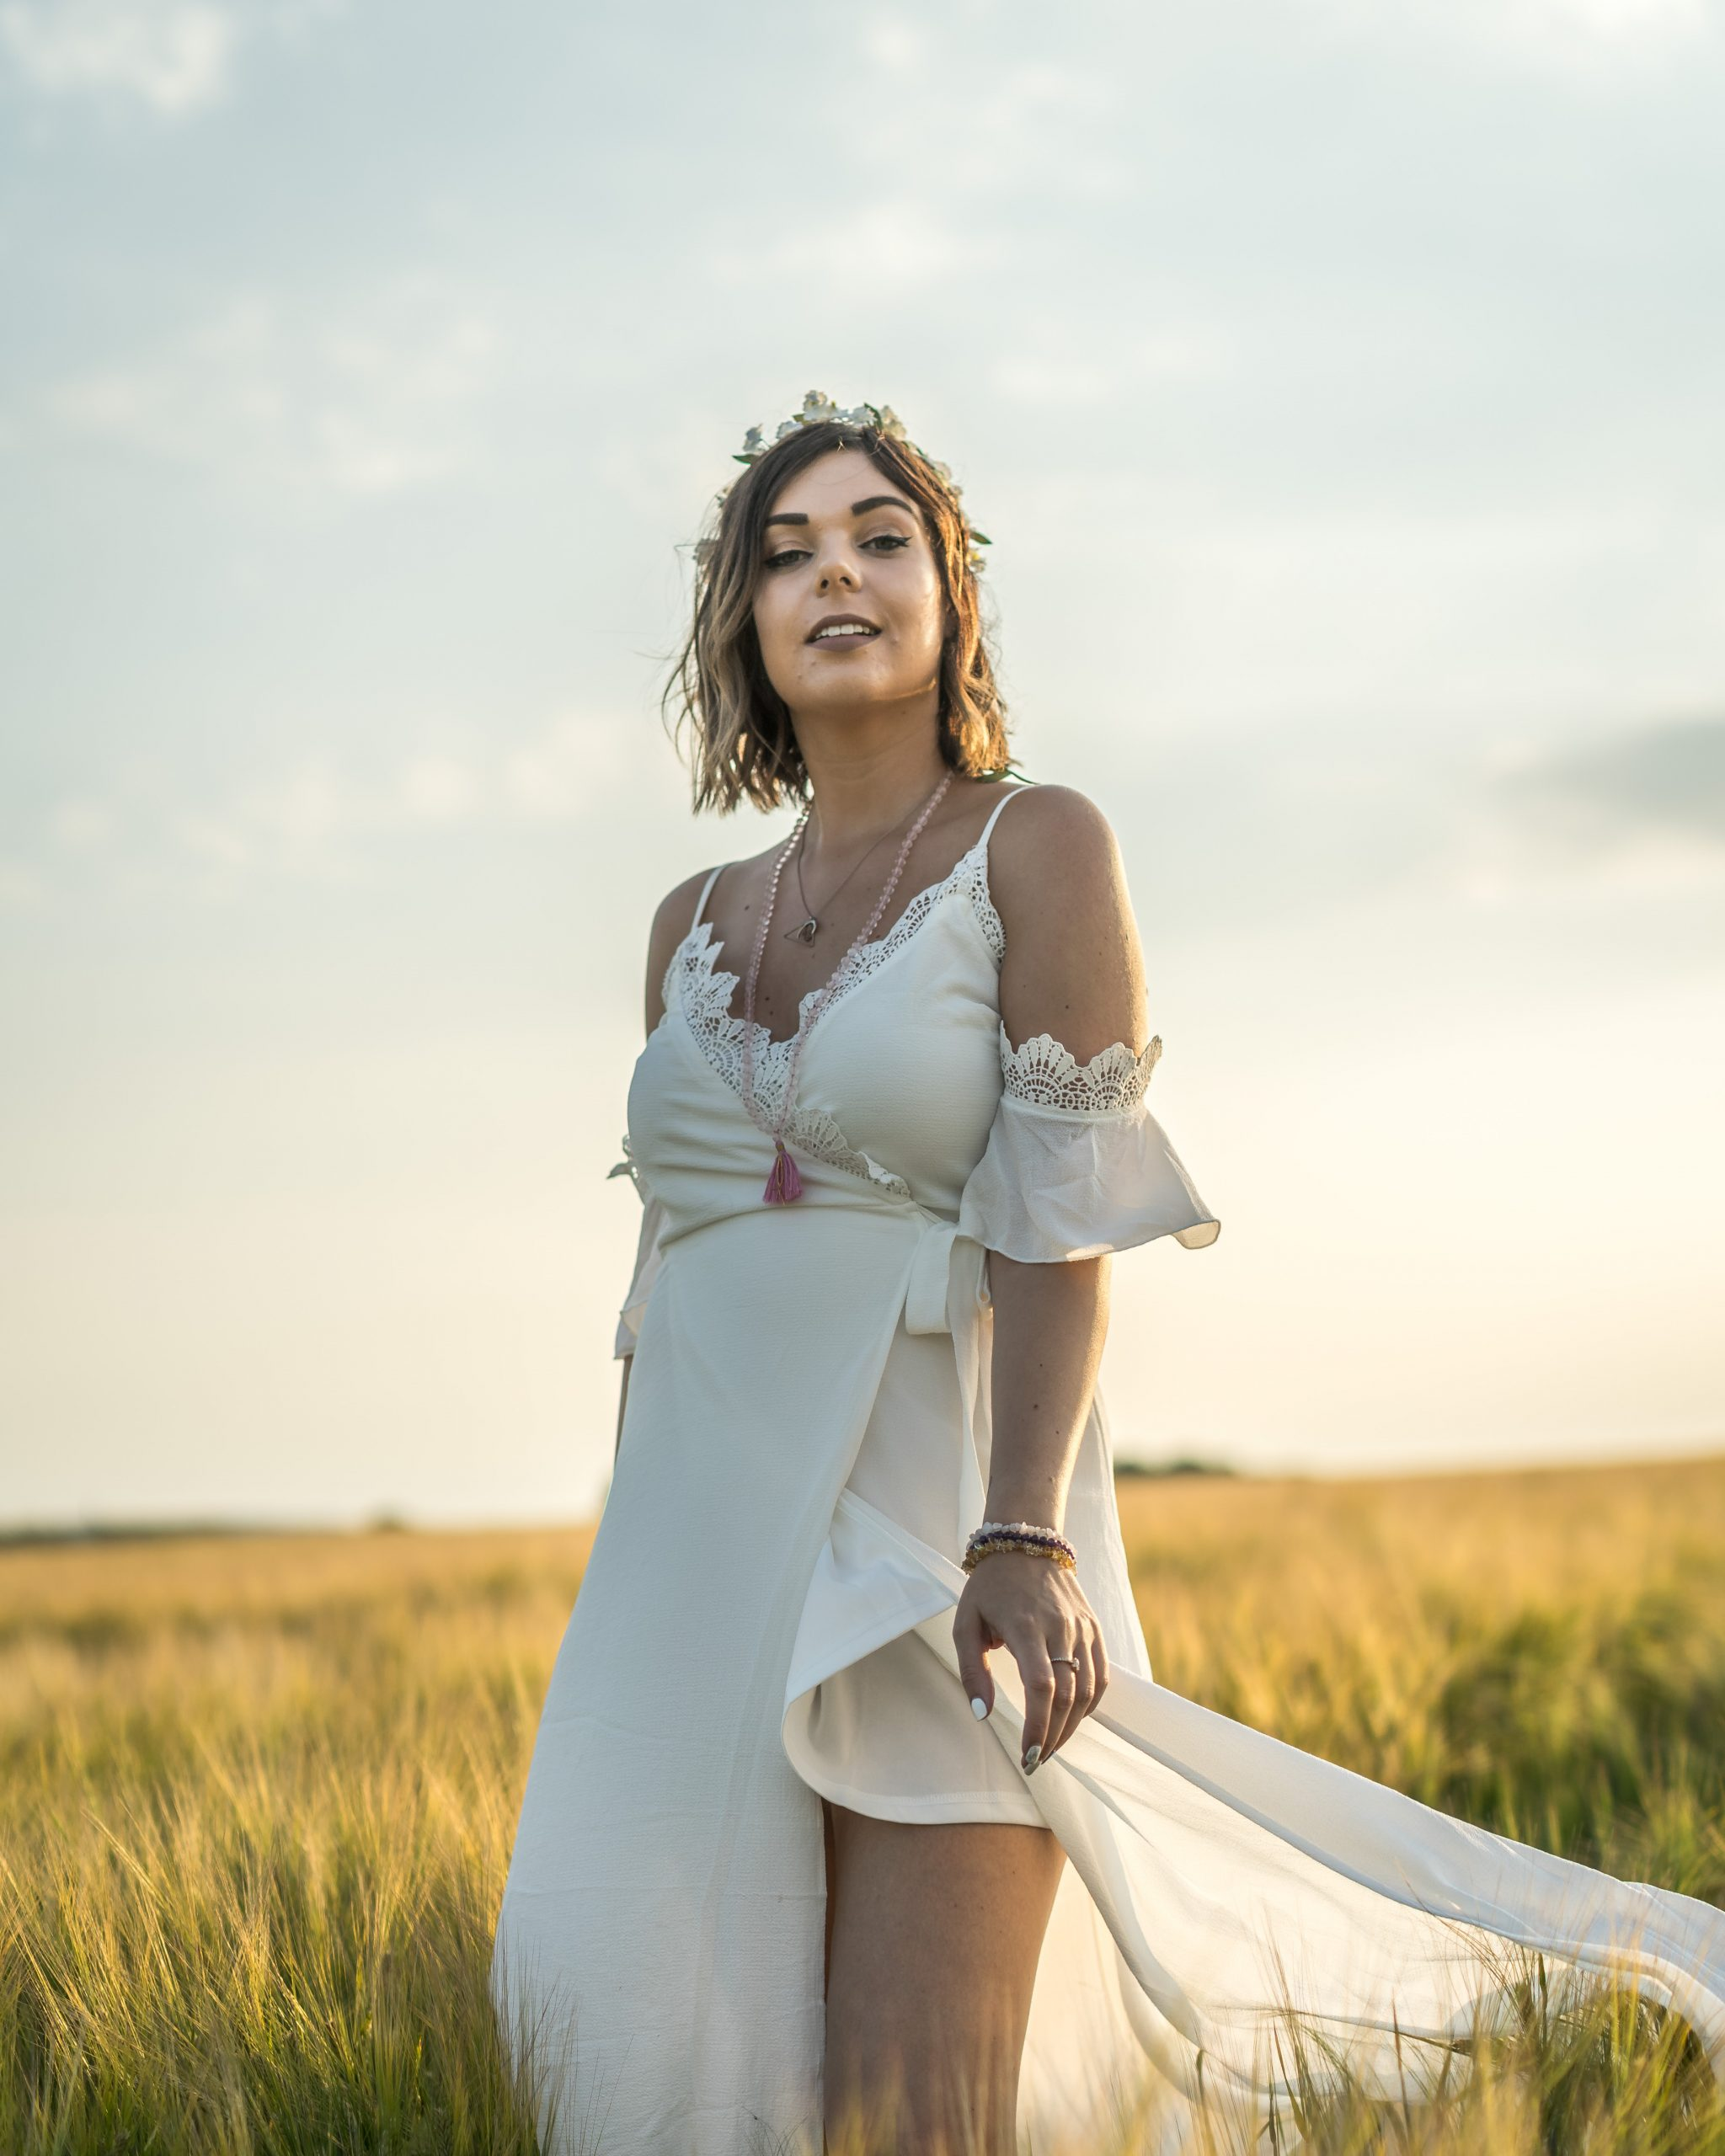 HOW TO LIVE YOUR BEST LIFE - EMMA MUMFORD SPIRITUAL QUEEN